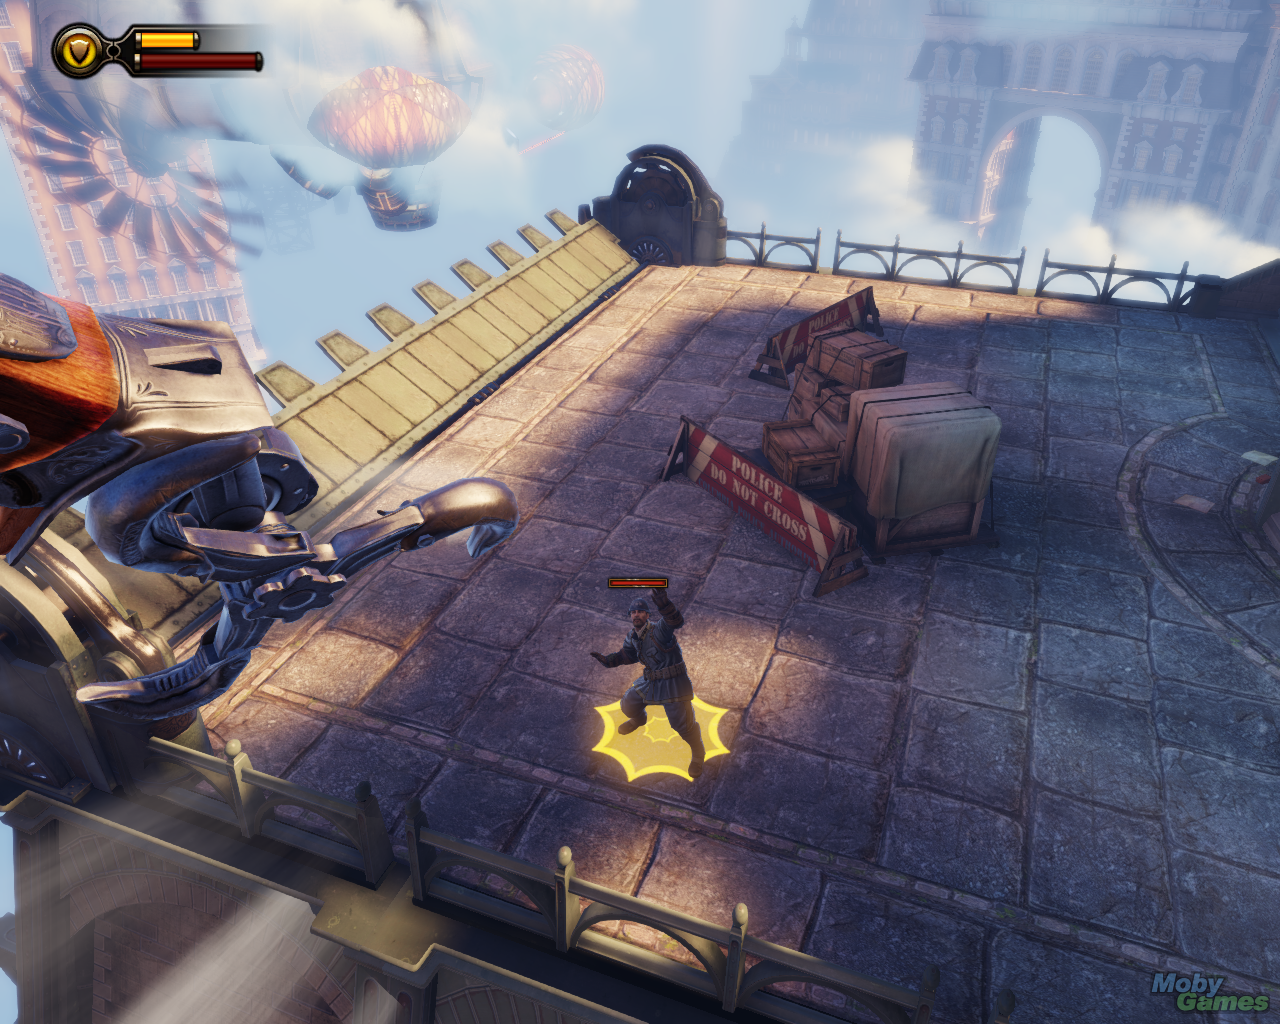 614549-bioshock-infinite-windows-screenshot-jumping-on-guys-from